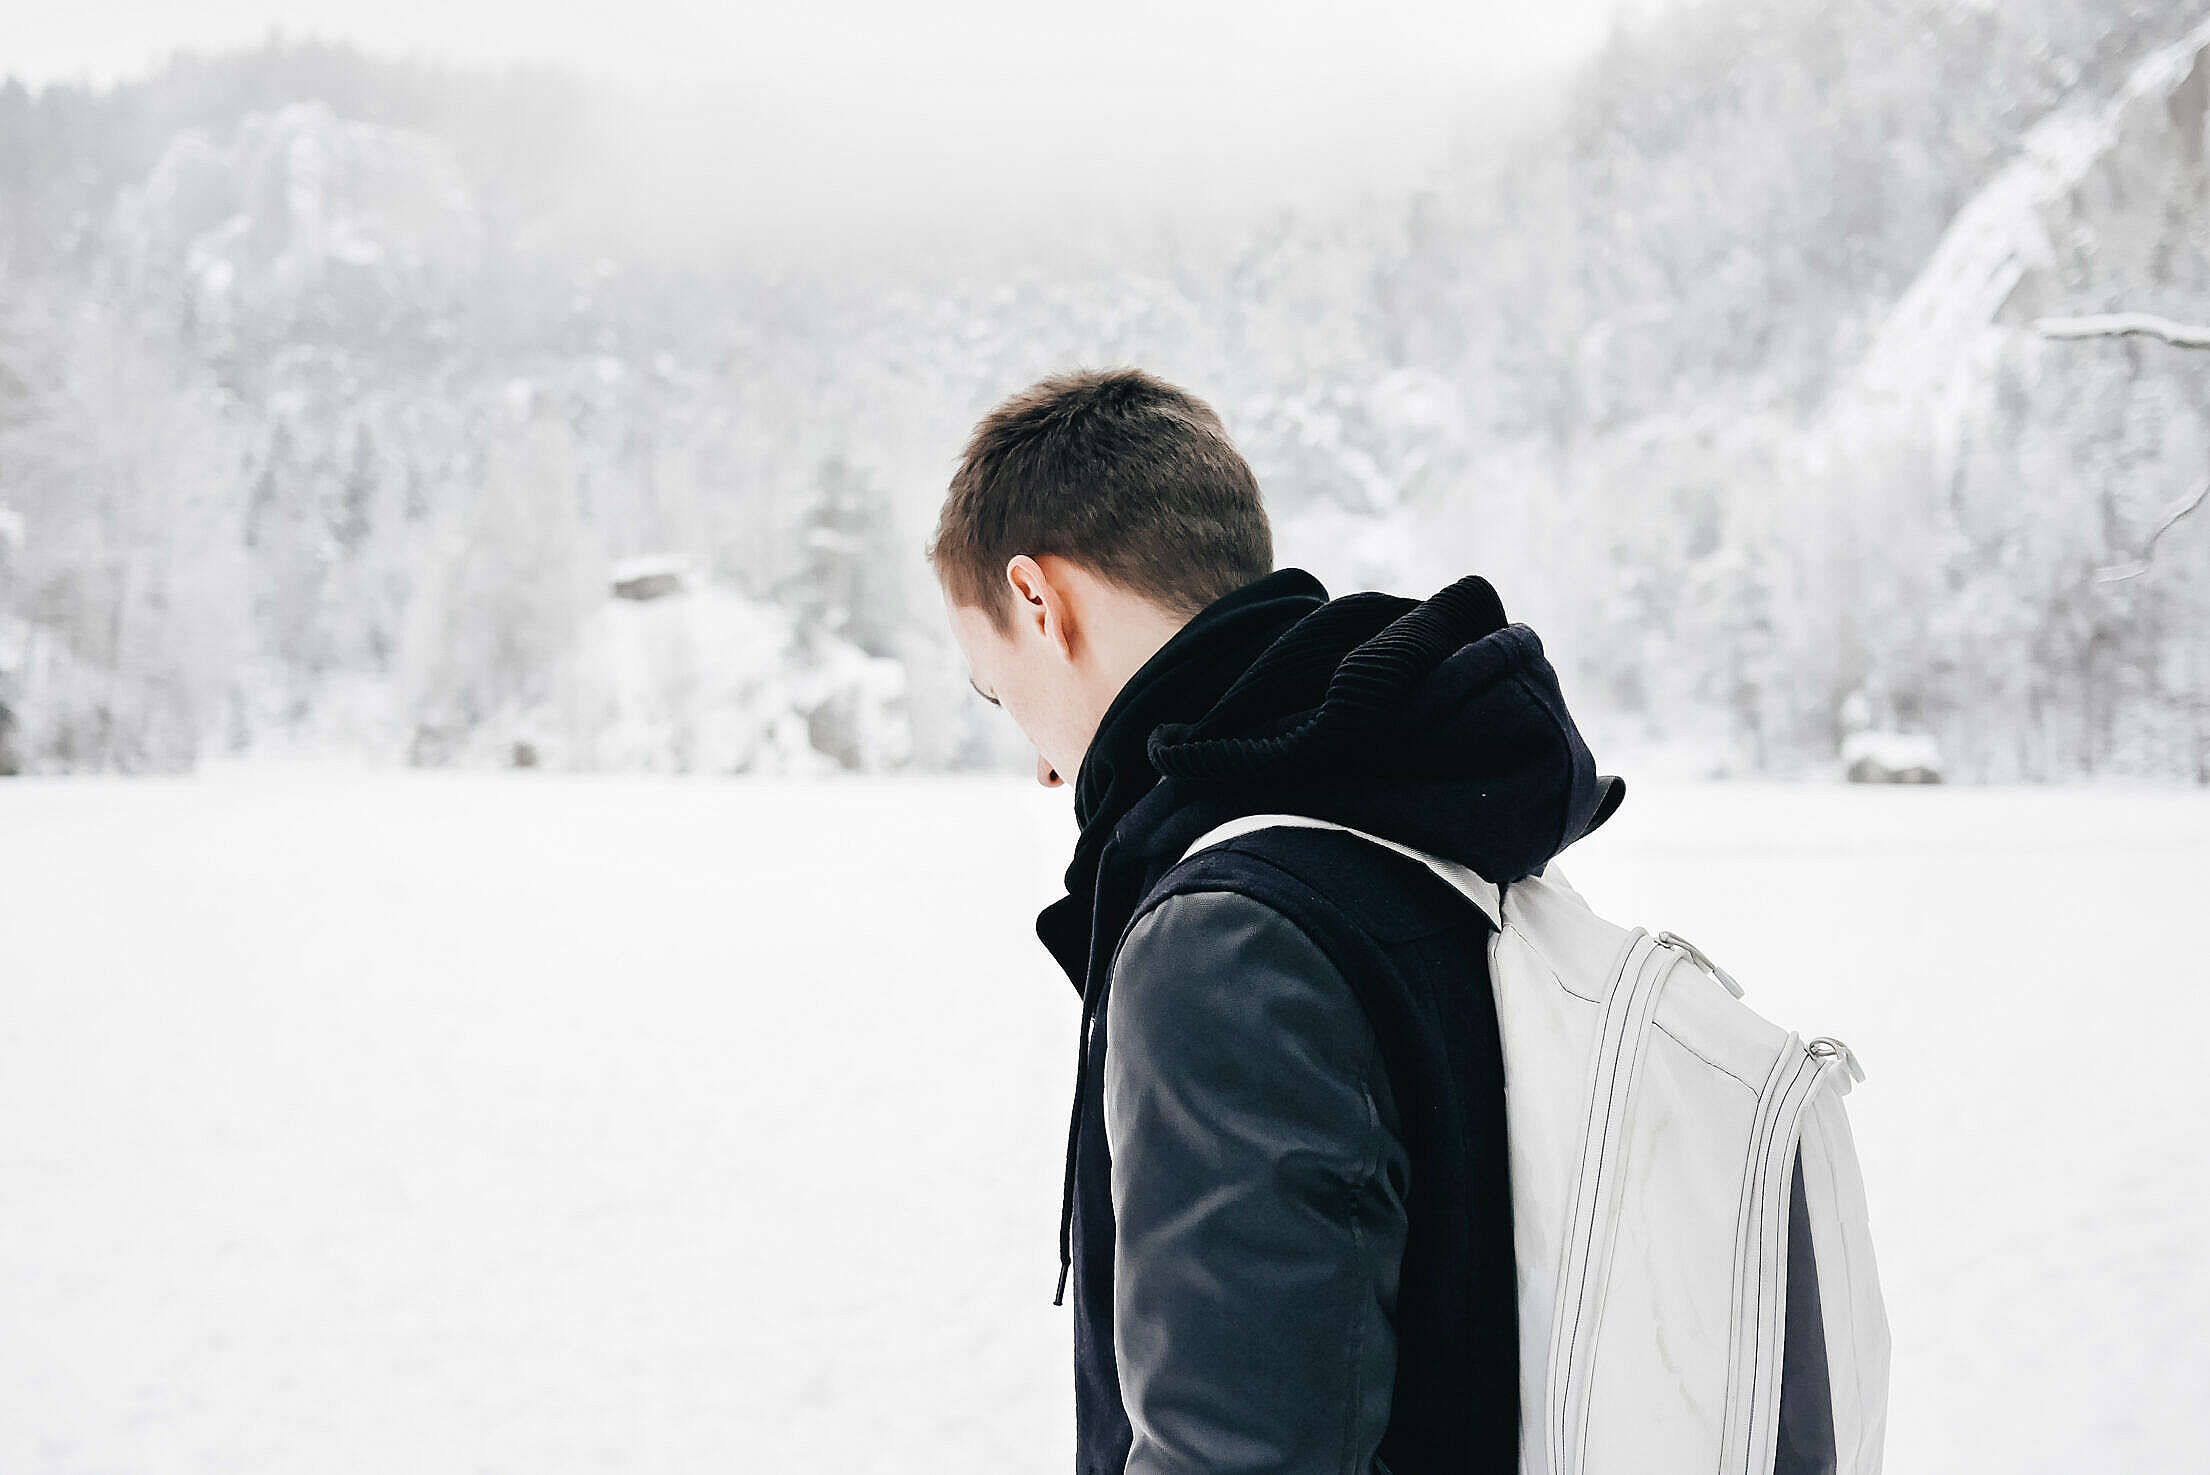 Man in the Middle of Snowy Valley Free Stock Photo